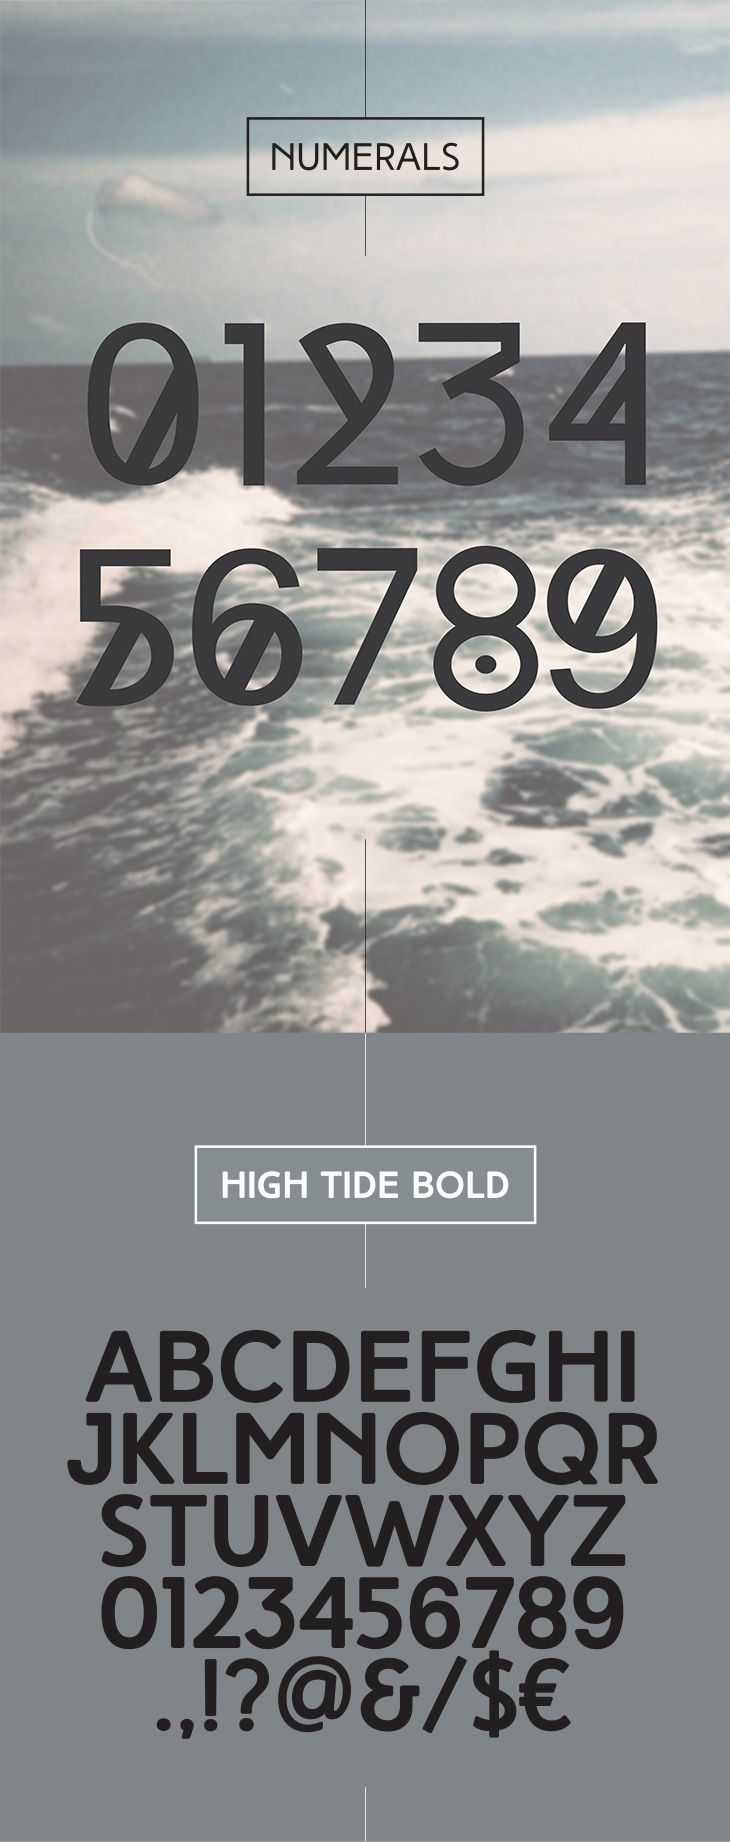 sterling silver High Tide  C unique free font family of three completely different weights  C Regular  Bold and Original  High Tide is an all caps  decorative typeface designed to be most suitable for titles  headlines  posters  logos  etc